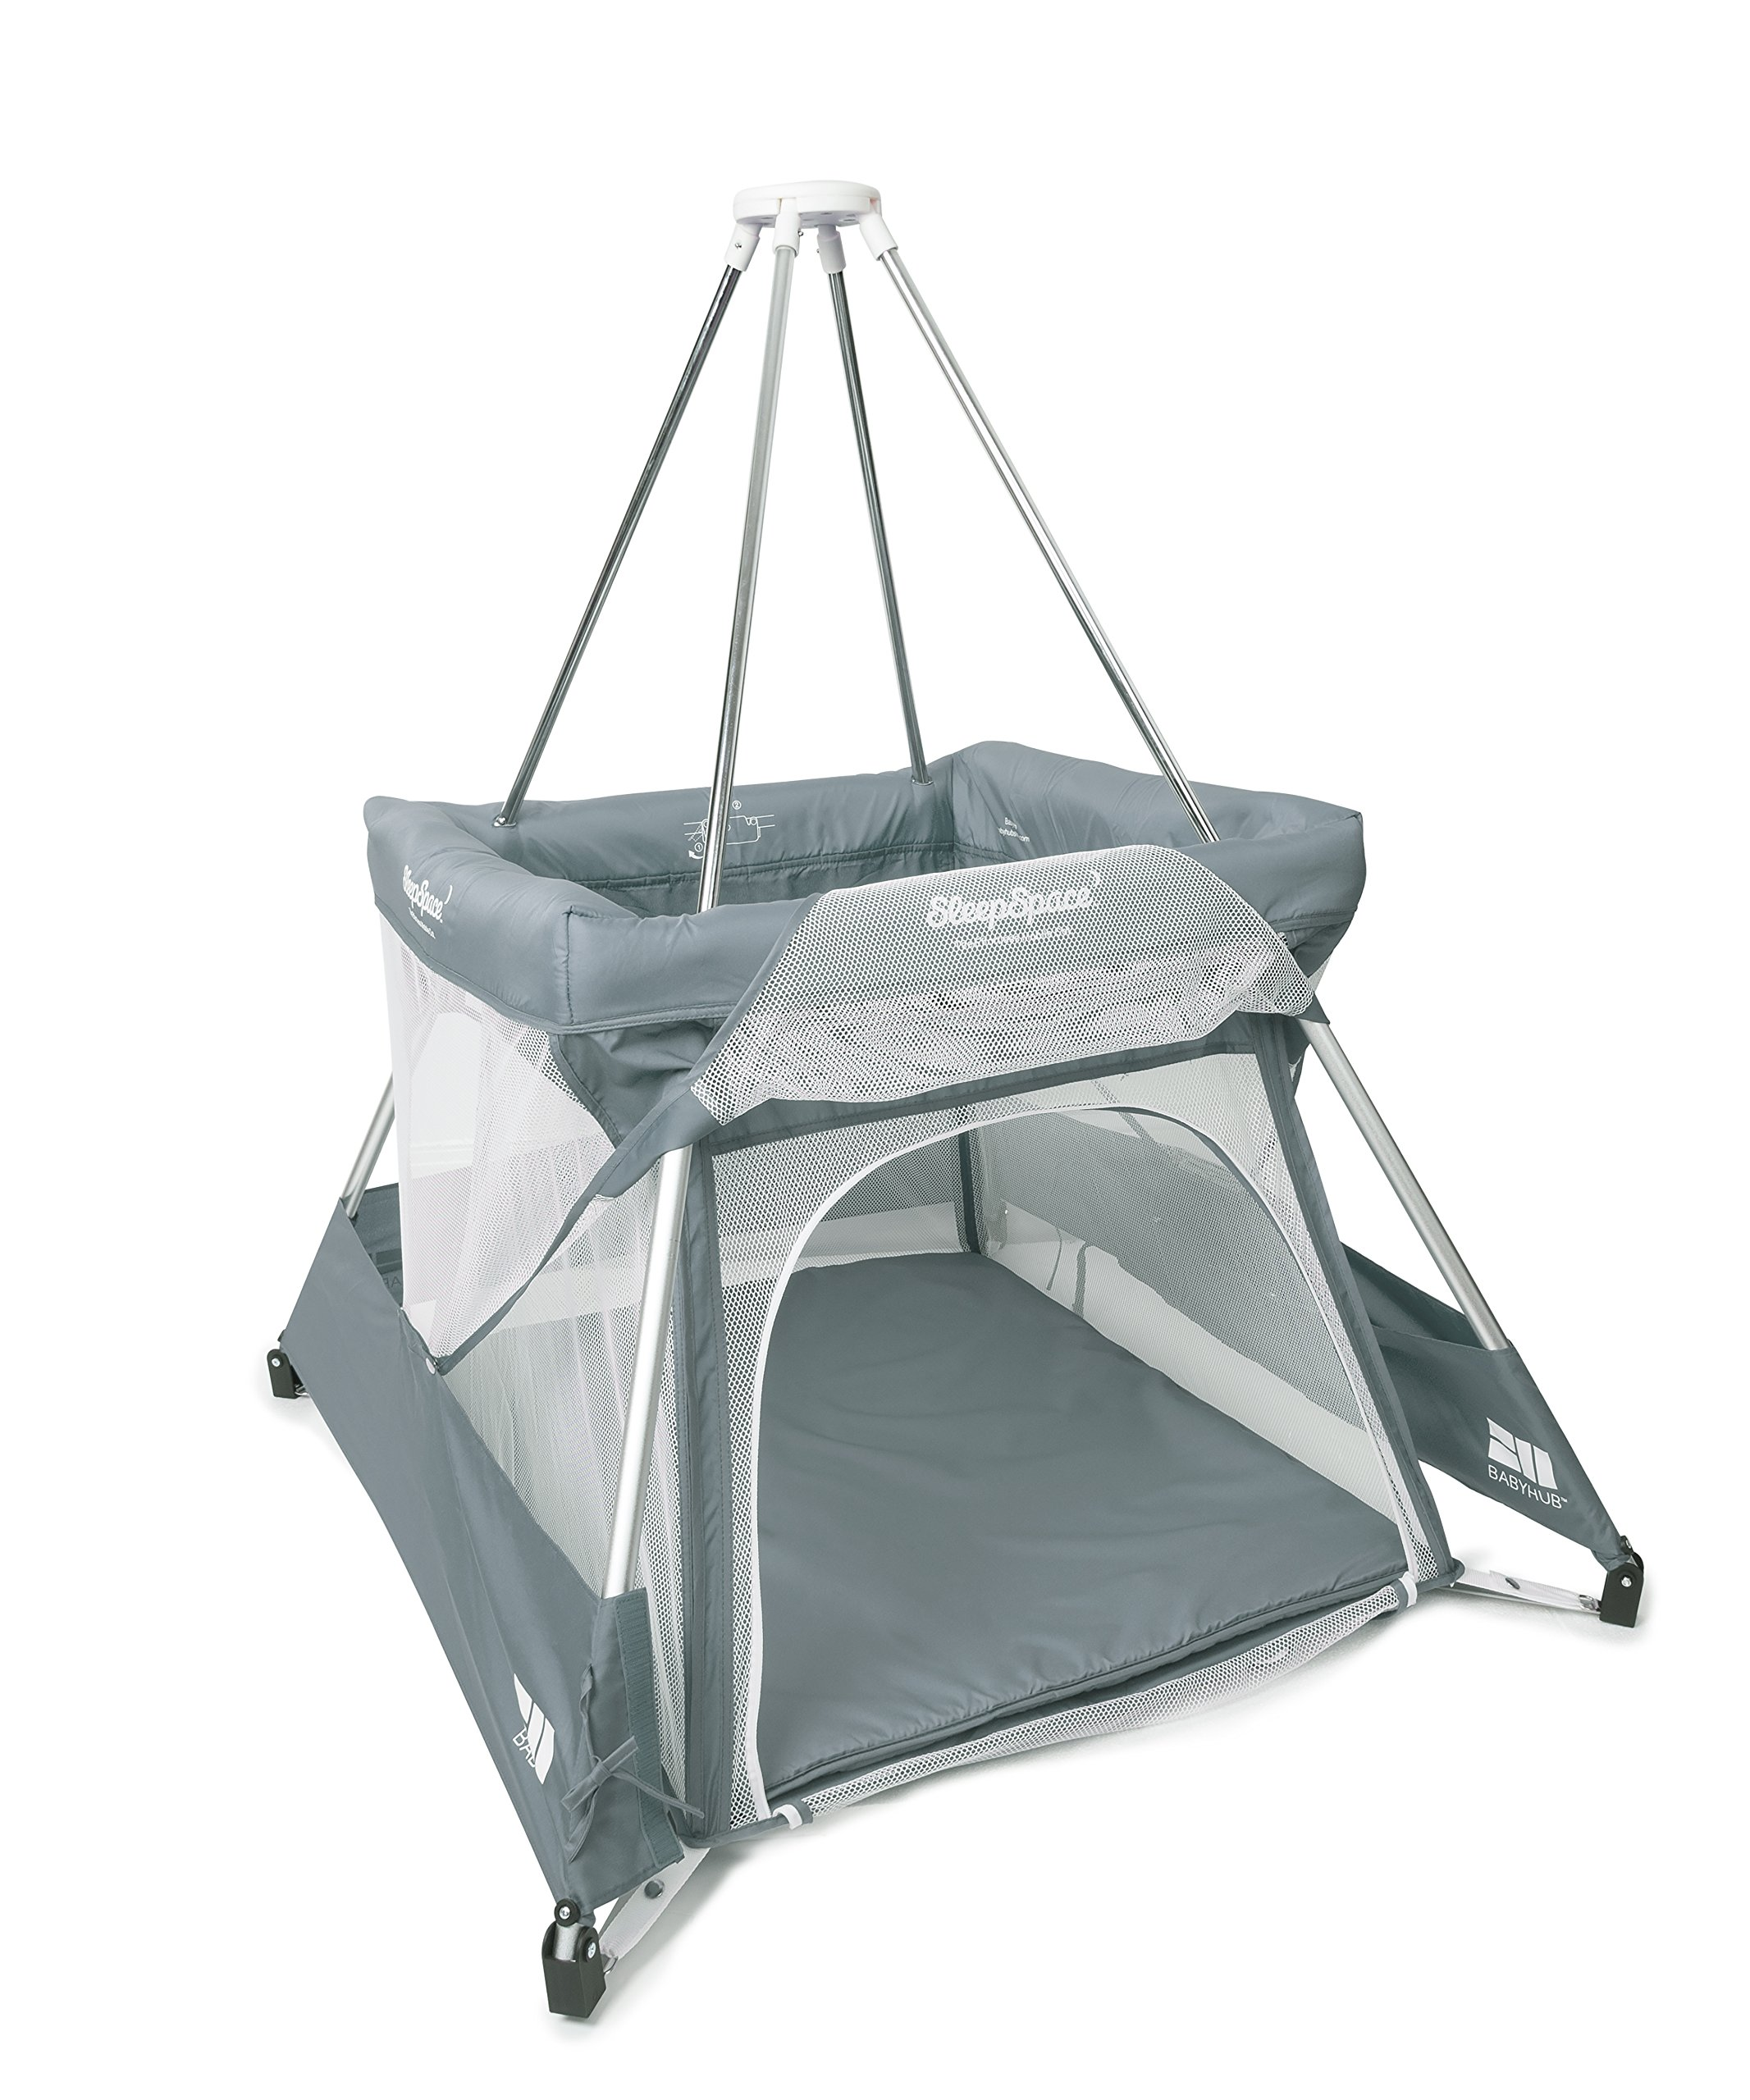 BabyHub SleepSpace Travel Cot with Mosquito Net, Grey BabyHub Three cots in one; use as a travel cot, mosquito proof space and reuse as a play tepee Includes extra mosquito net cover that can be securely in place Can be set up and moved even while holding a baby 7